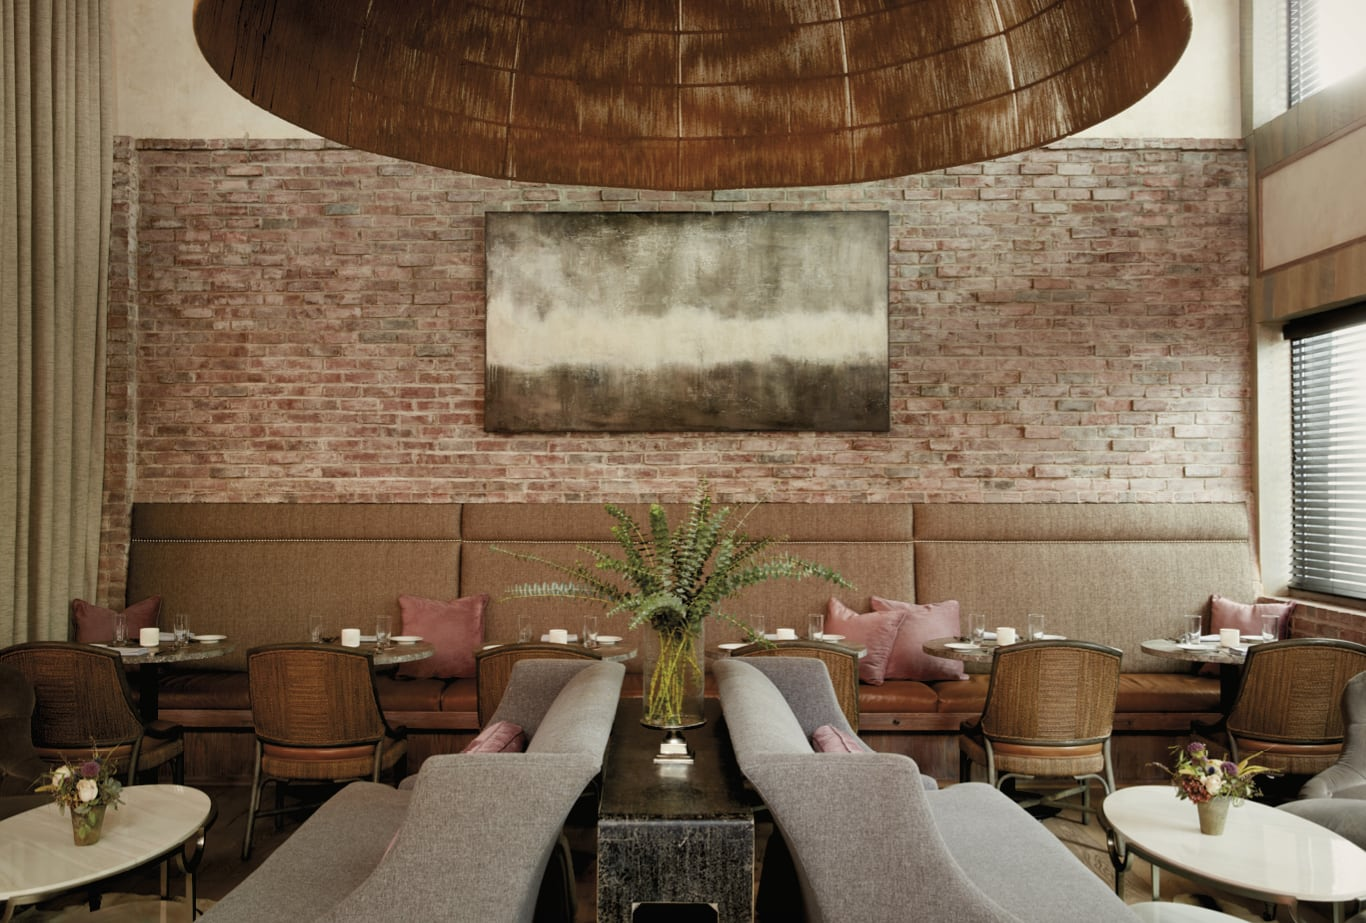 Restaurant bar area with a brick wall